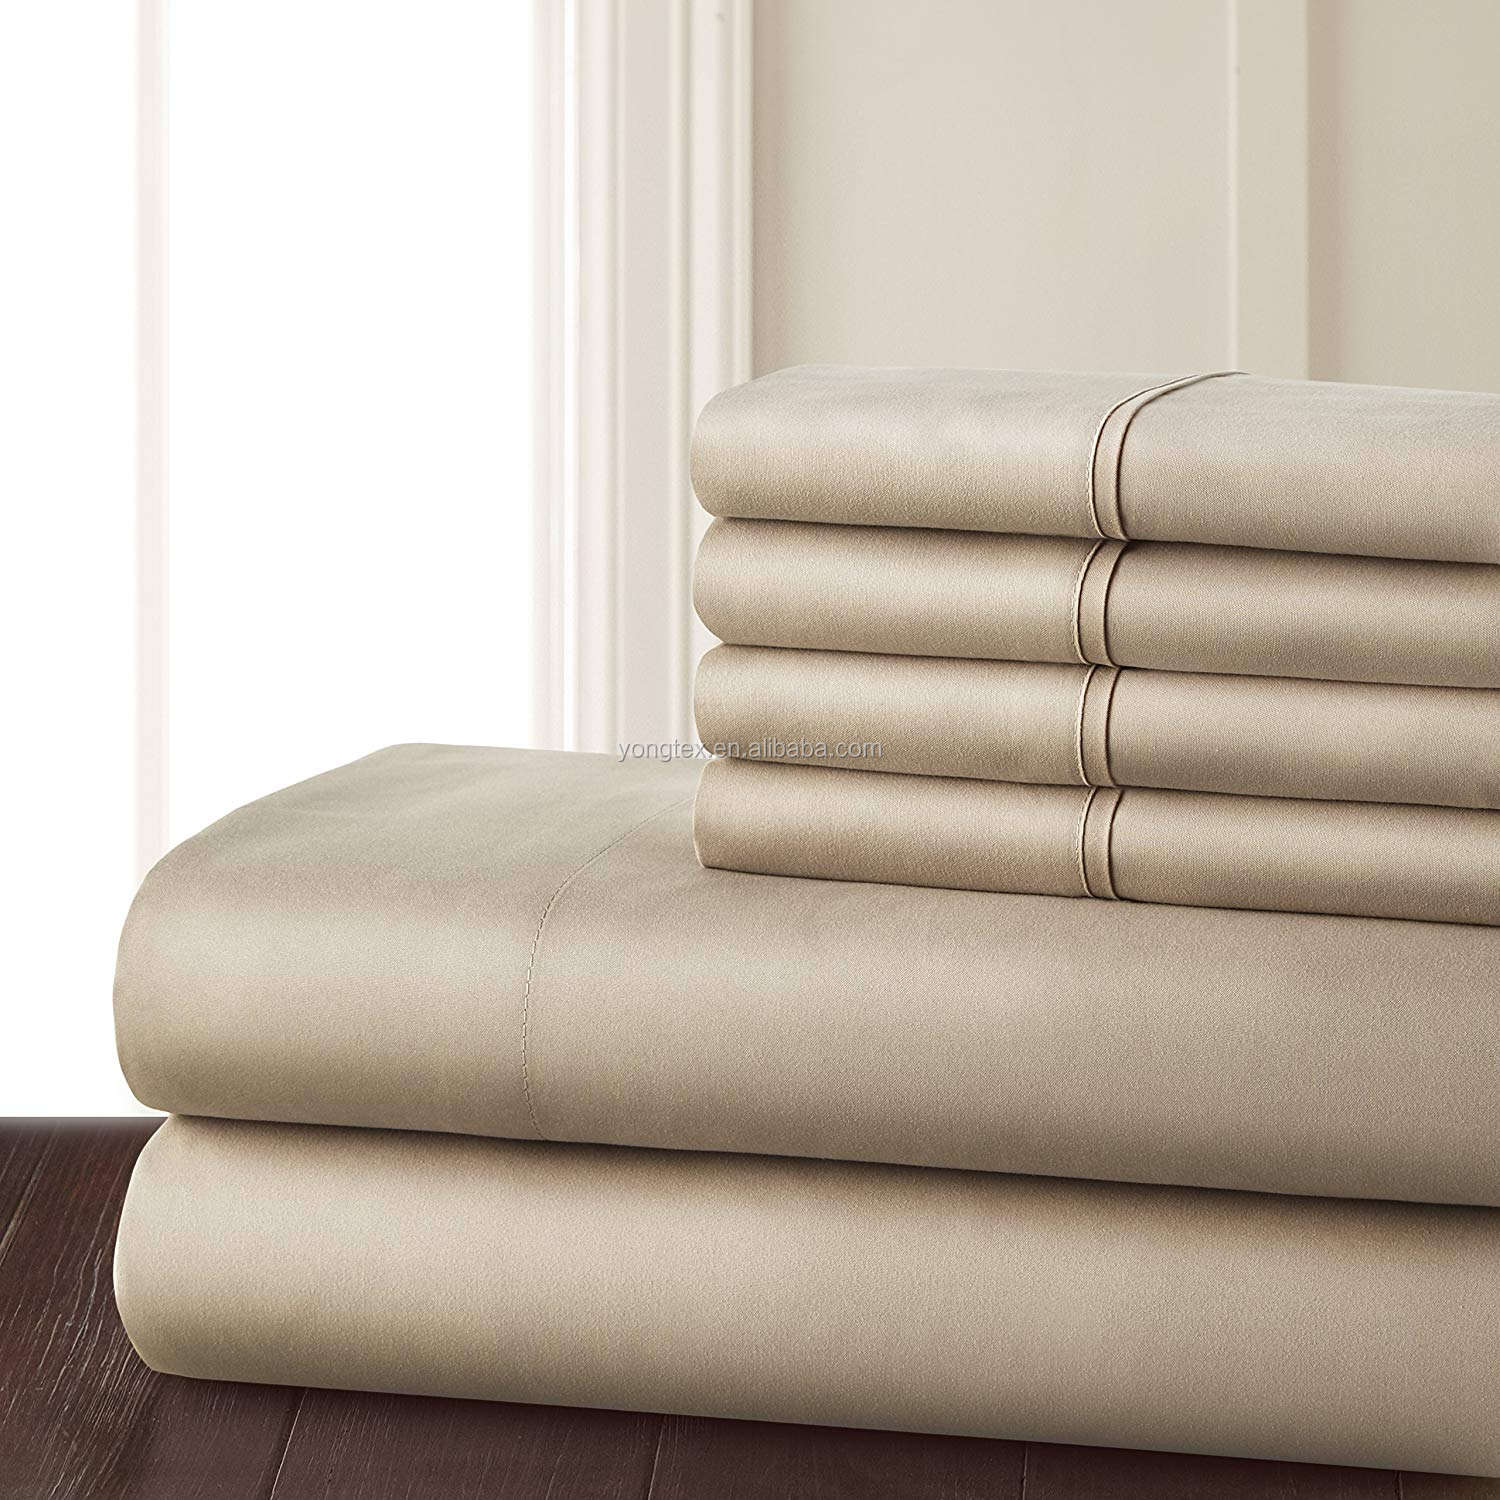 Soft Feeling 100% Pure Bamboo Bedding Set/400TC Bamboo cot sheets